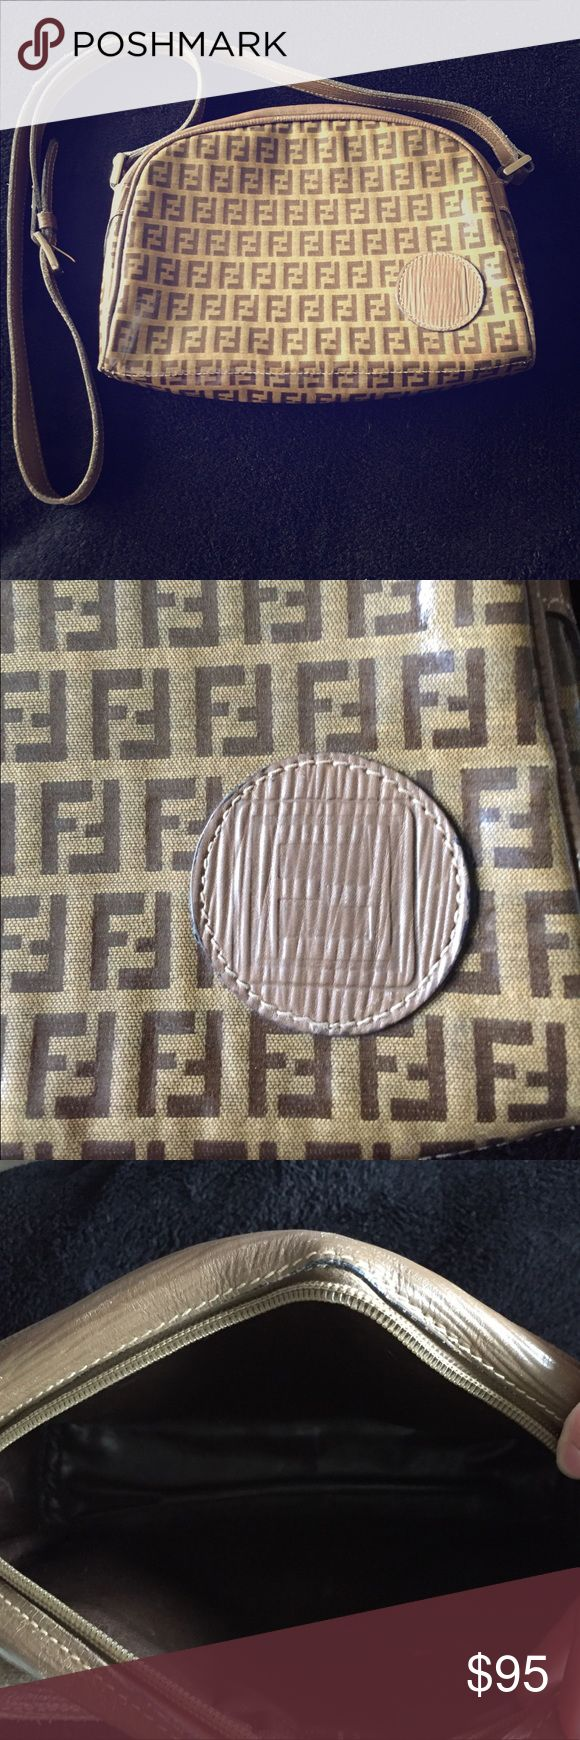 Authentic vintage Fendi purse This beautiful real vintage Fendi purse is in good condition the body of the bag is in very good condition! A little wear by the zippers other than that it's in great shape. Made in Italy dimensions are 10.5x7.5 Fendi Bags Crossbody Bags